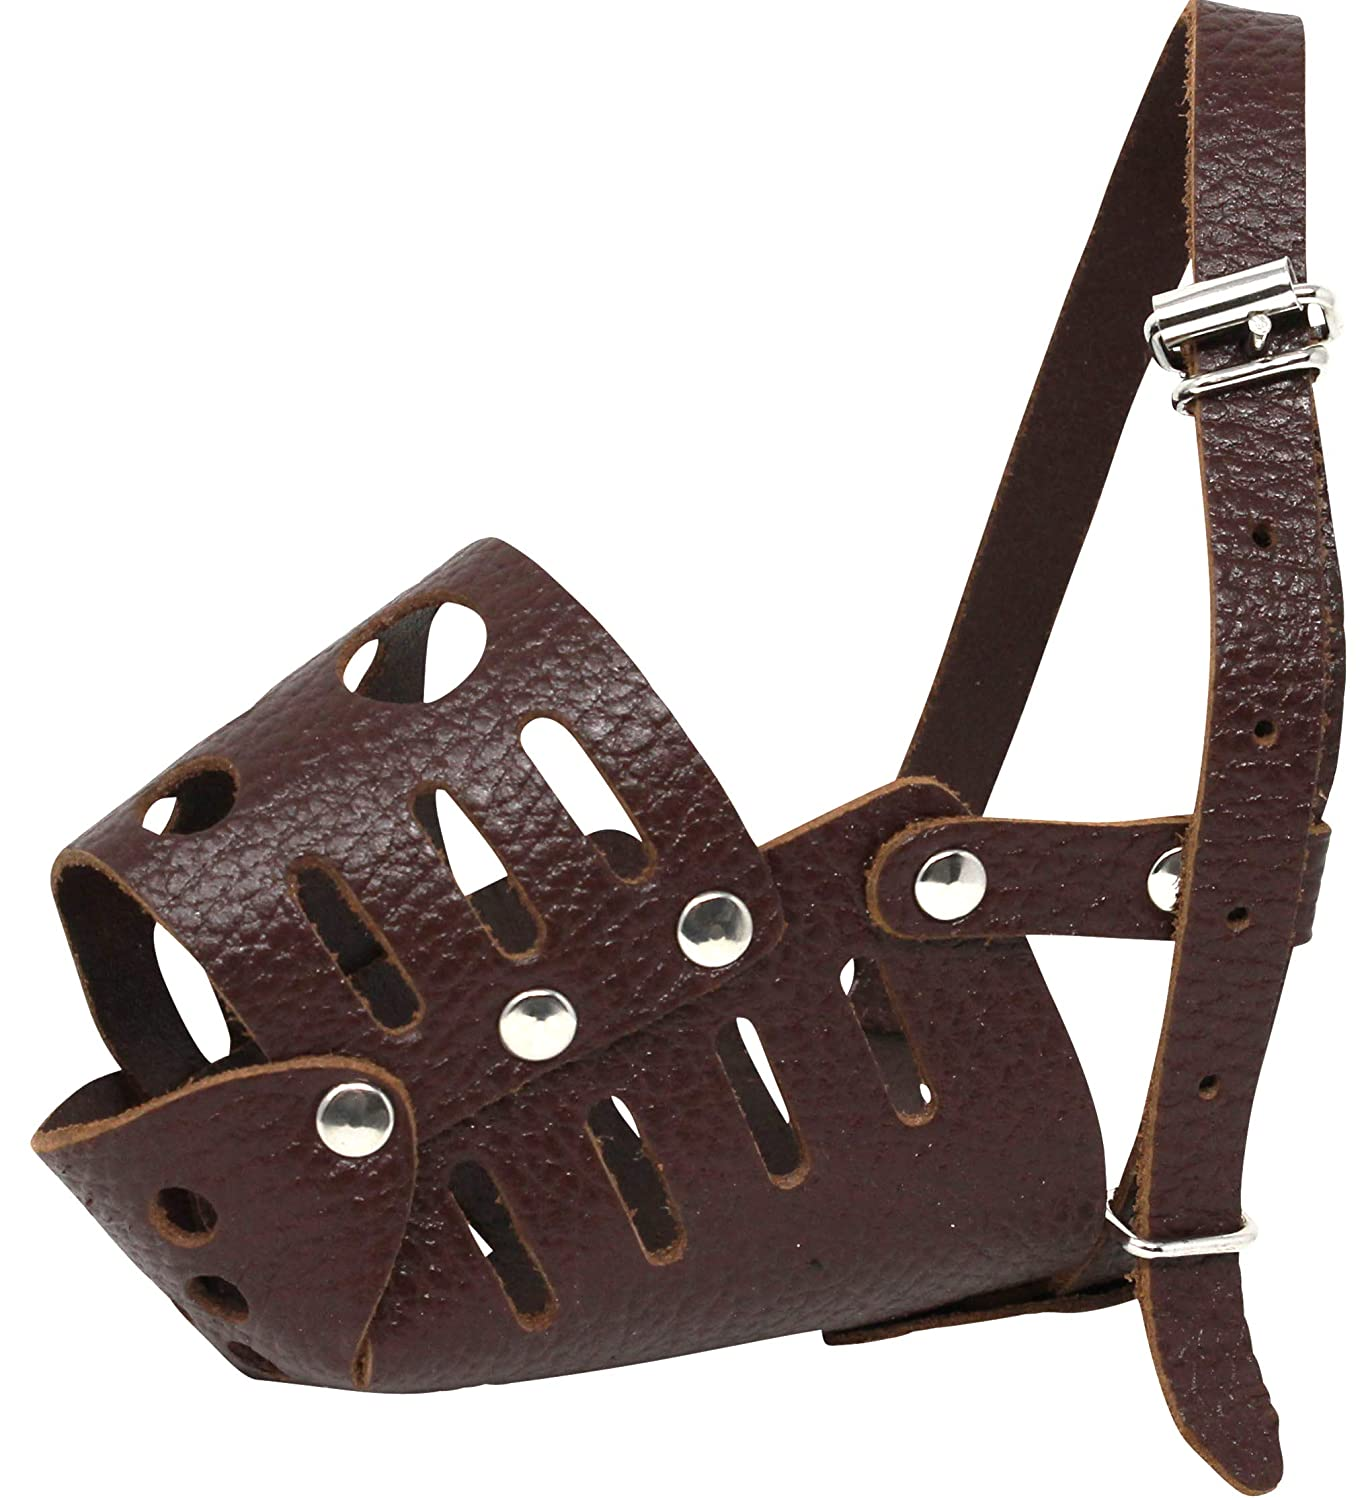 Circumf. 6.75\ Real Leather Dog Cage Basket Muzzle Brown Small Breeds (Circumf. 6.75 ; Snout 2.5 )